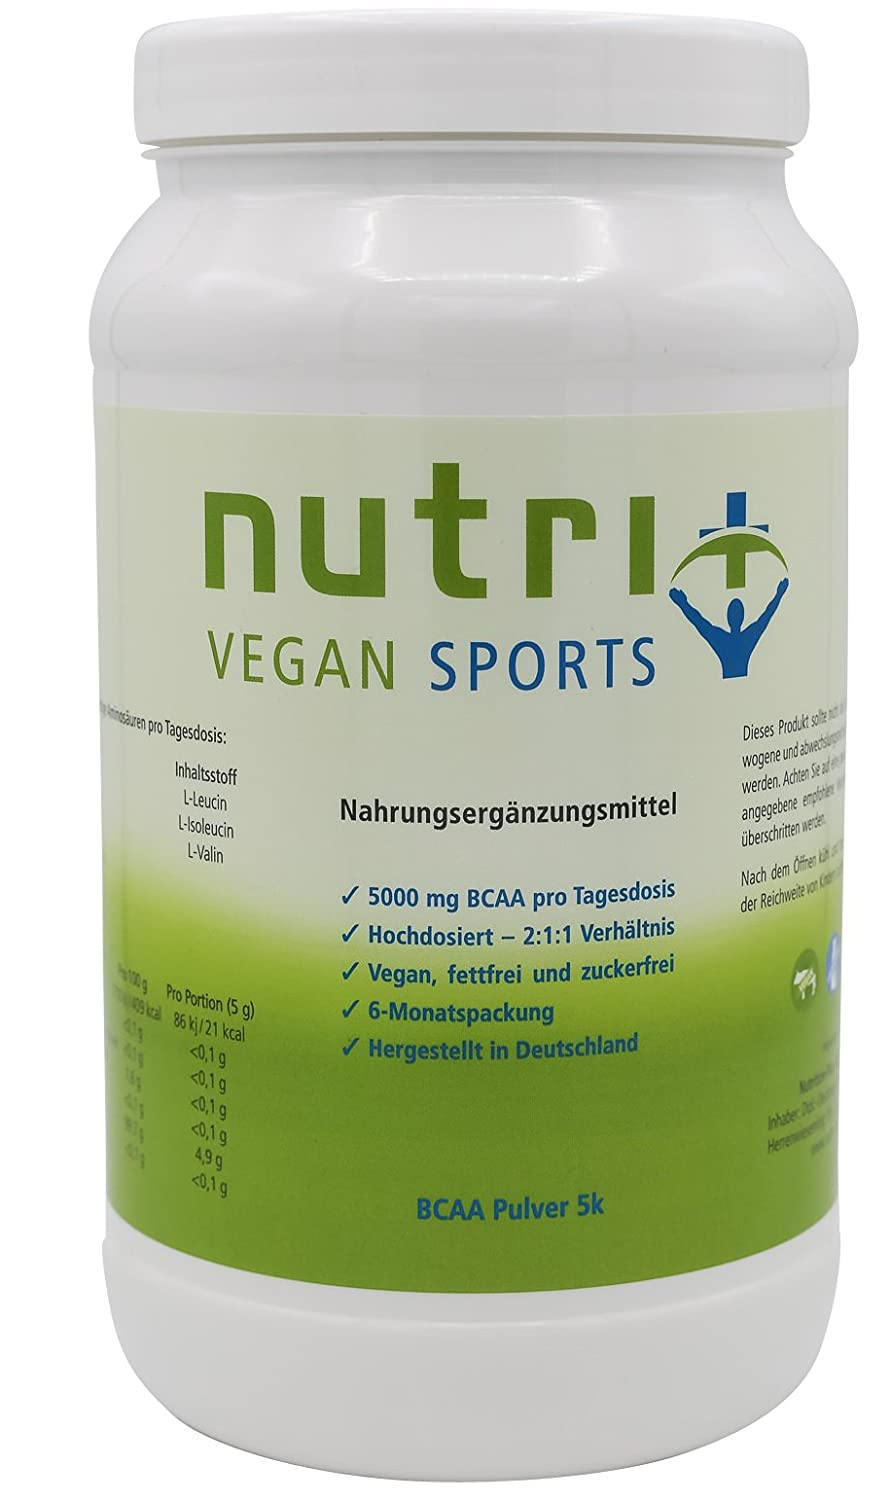 Nutri-Plus Vegan Sports BCAA Pulver